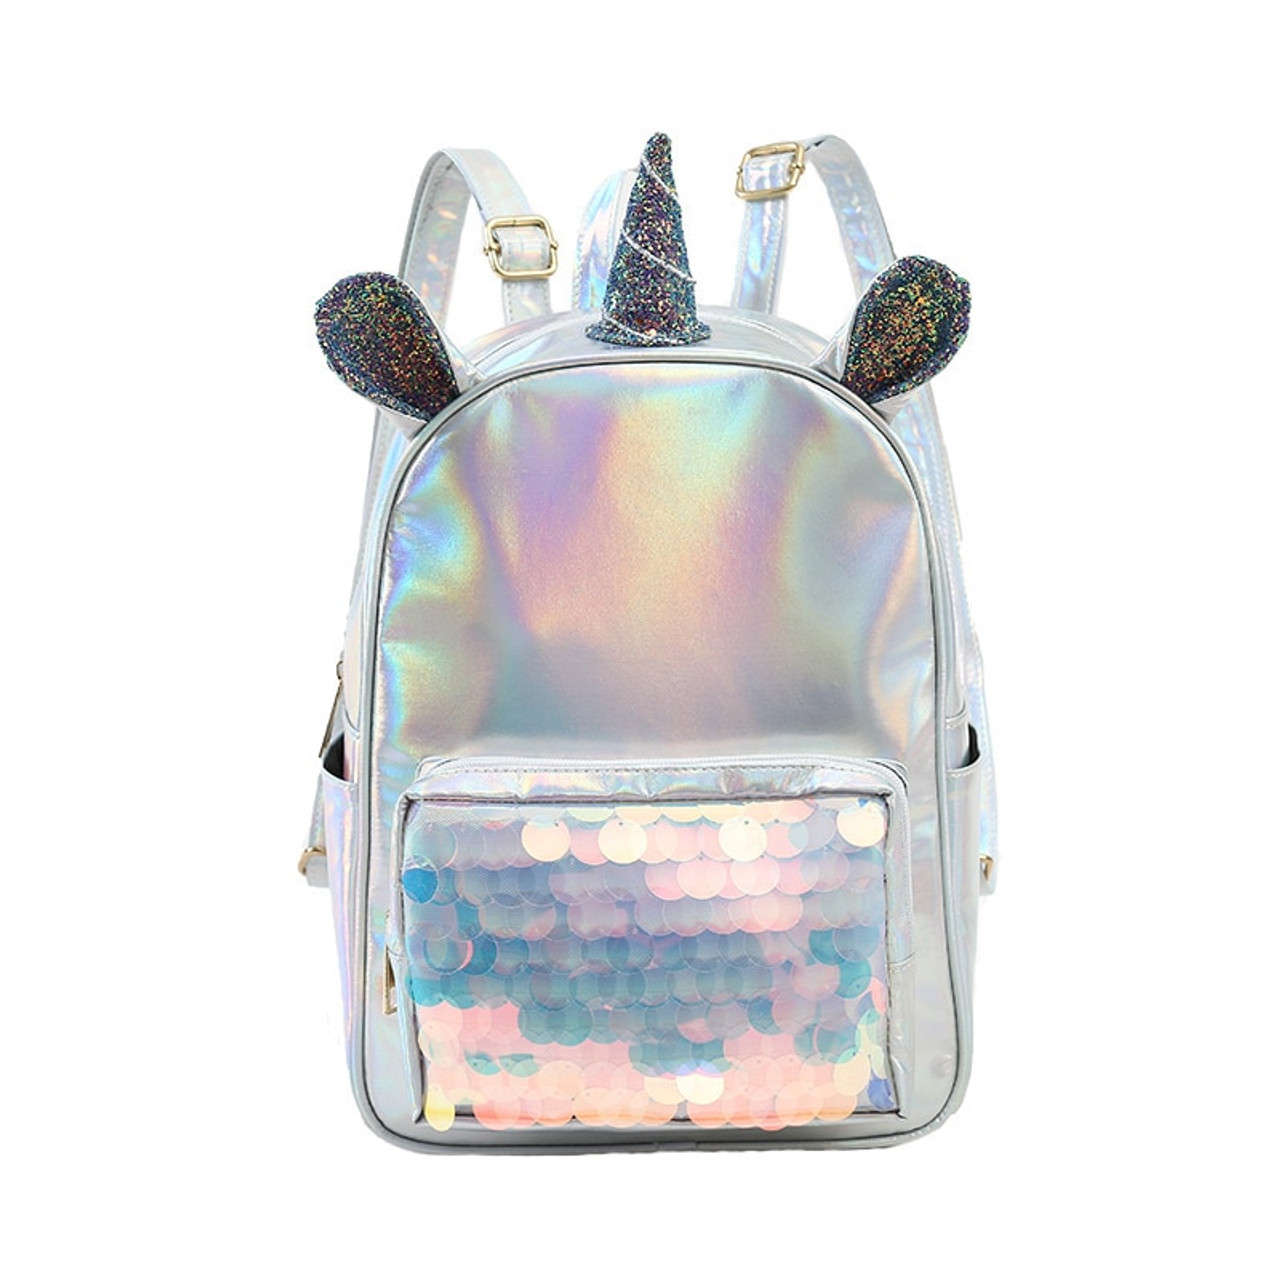 d1bfeea1577 New 2019 Laser Leather Mini Backpack For Women Sequins Unicorn Mochila  Girls Travel Back Bags Silver Fashion School Bagpack